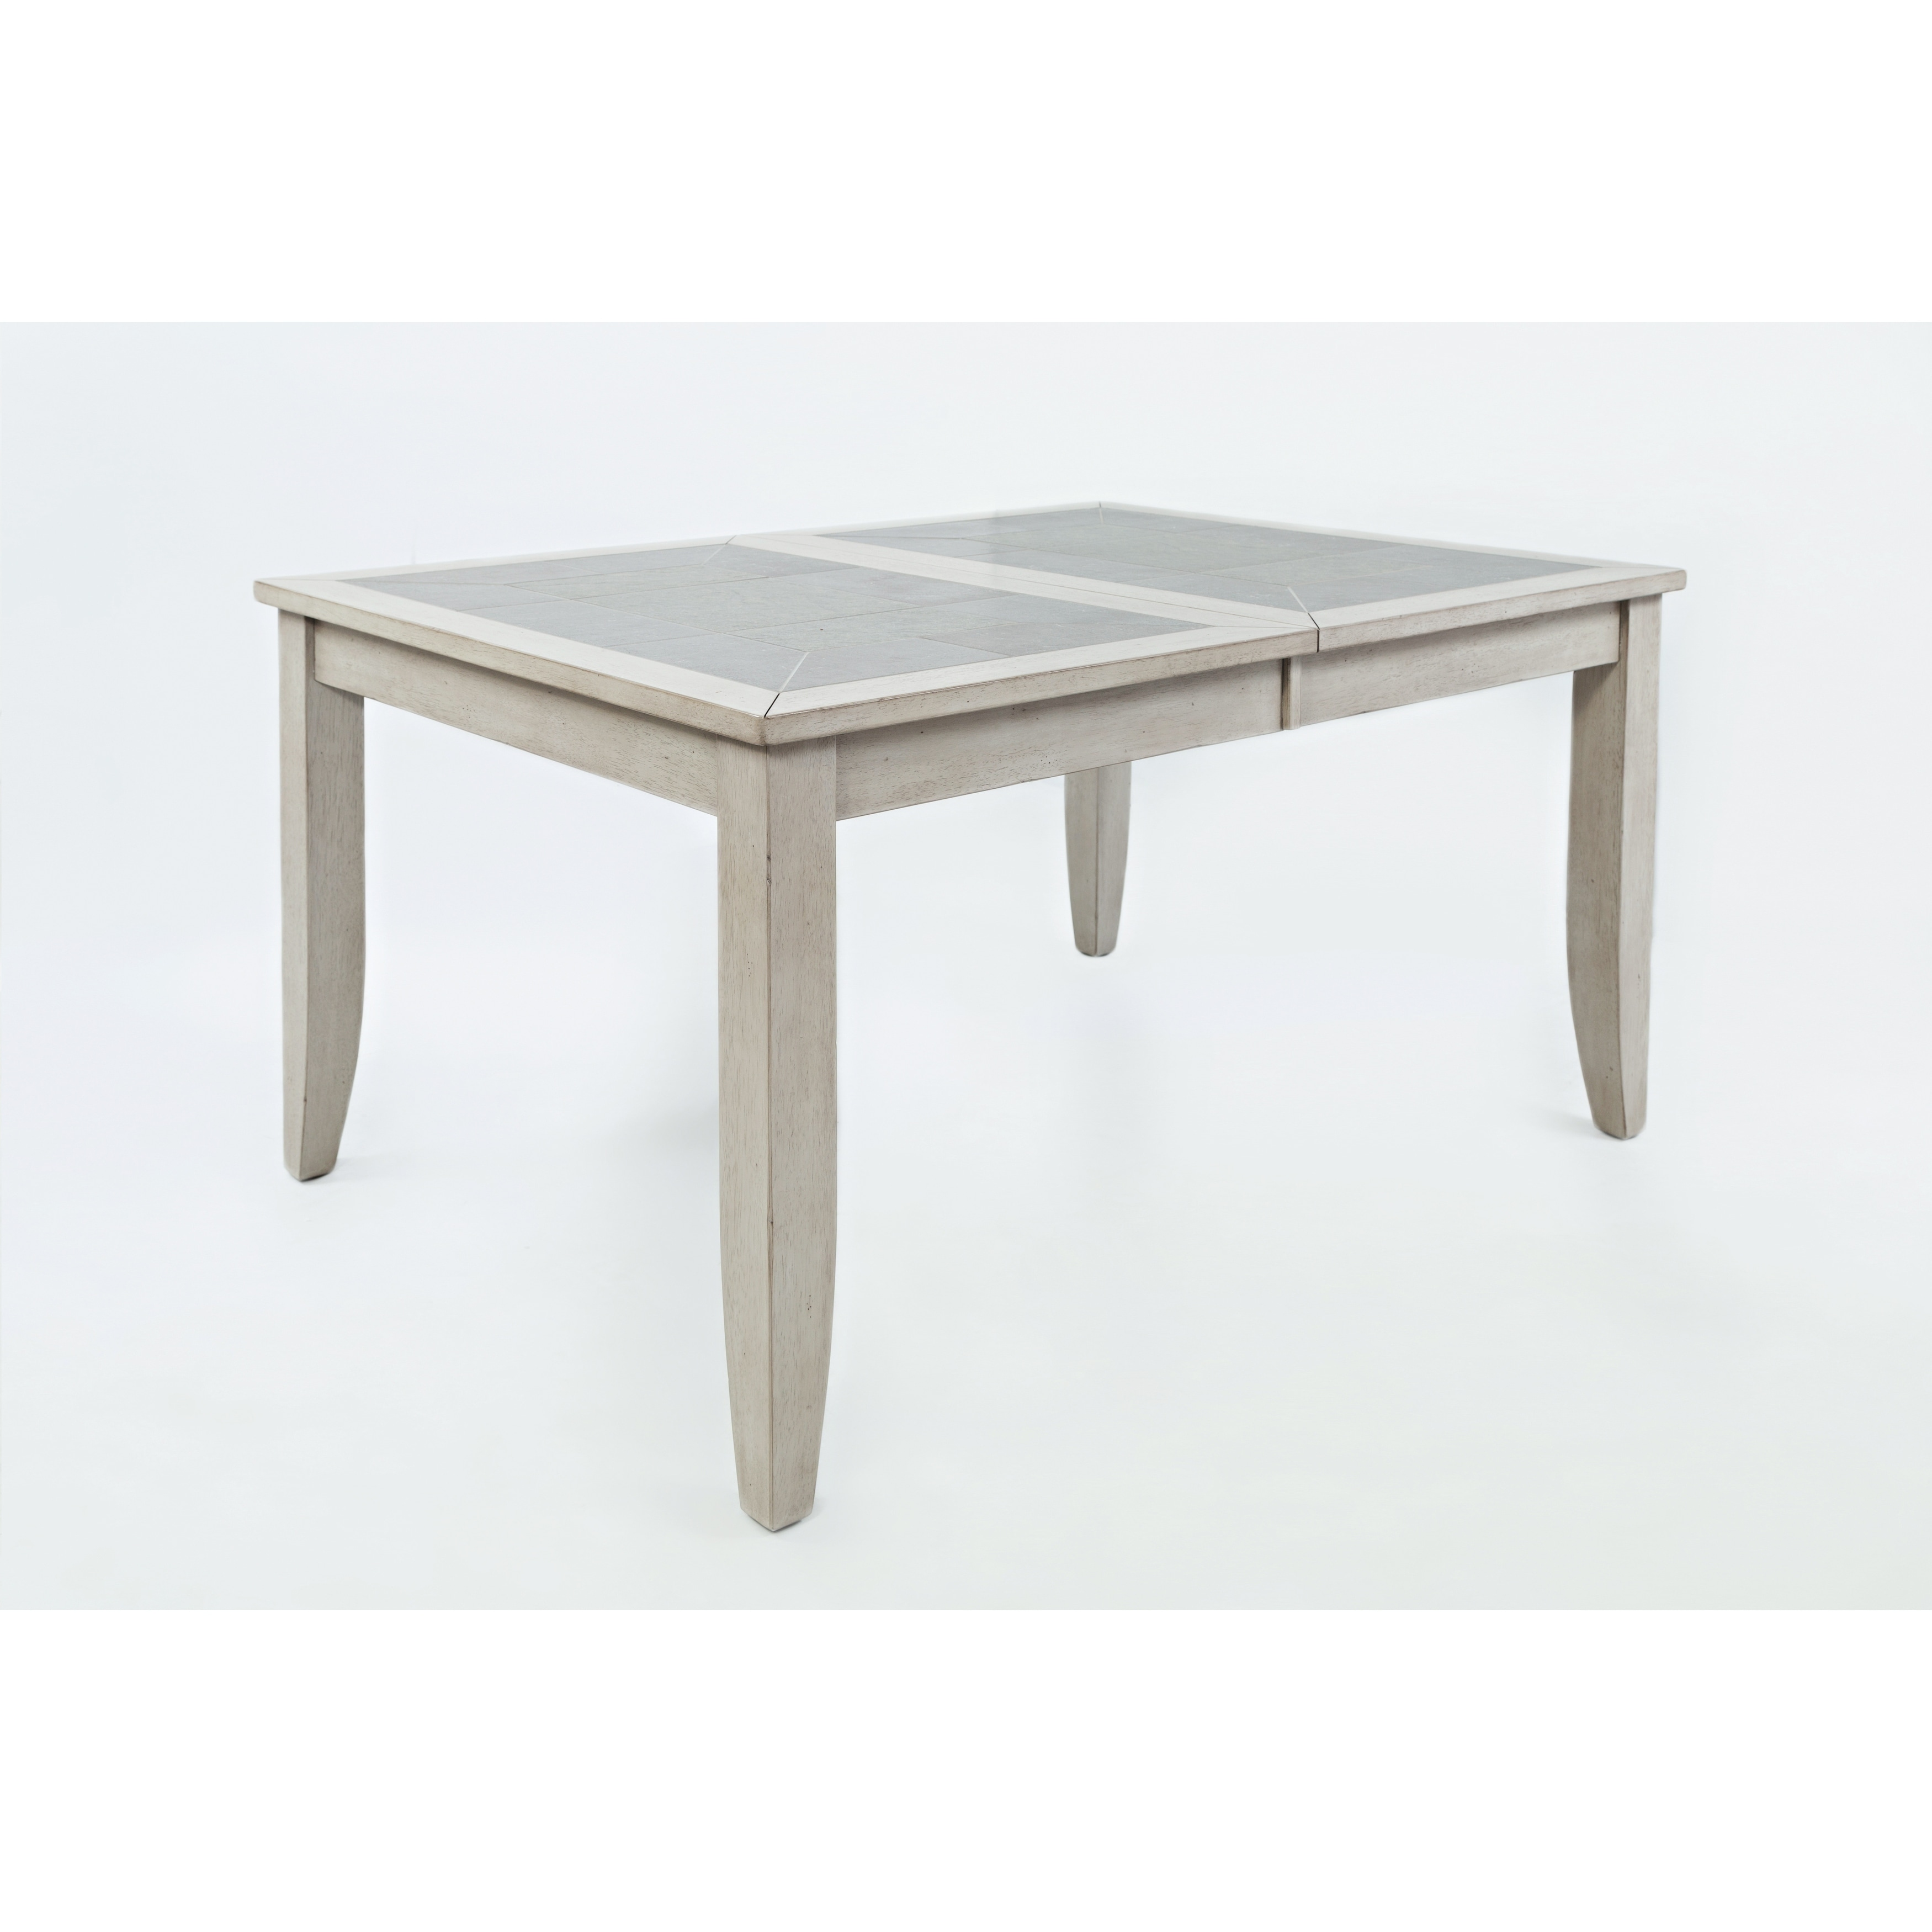 Wooden Extension Dining Table With